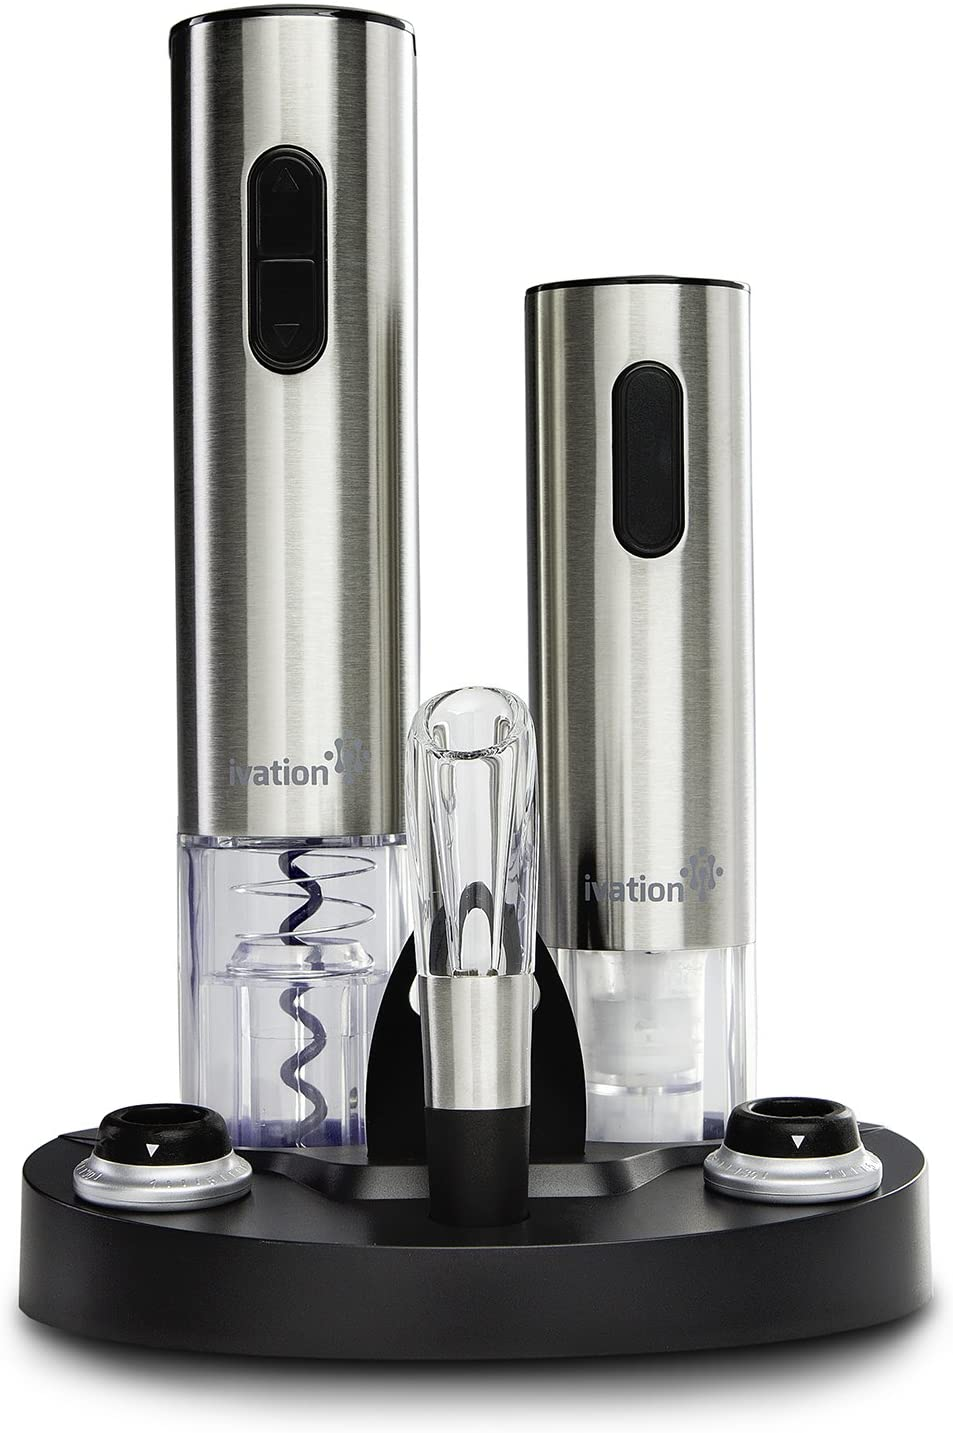 ?ivation wine gift set, includes stainless steel electric wine bottle opener